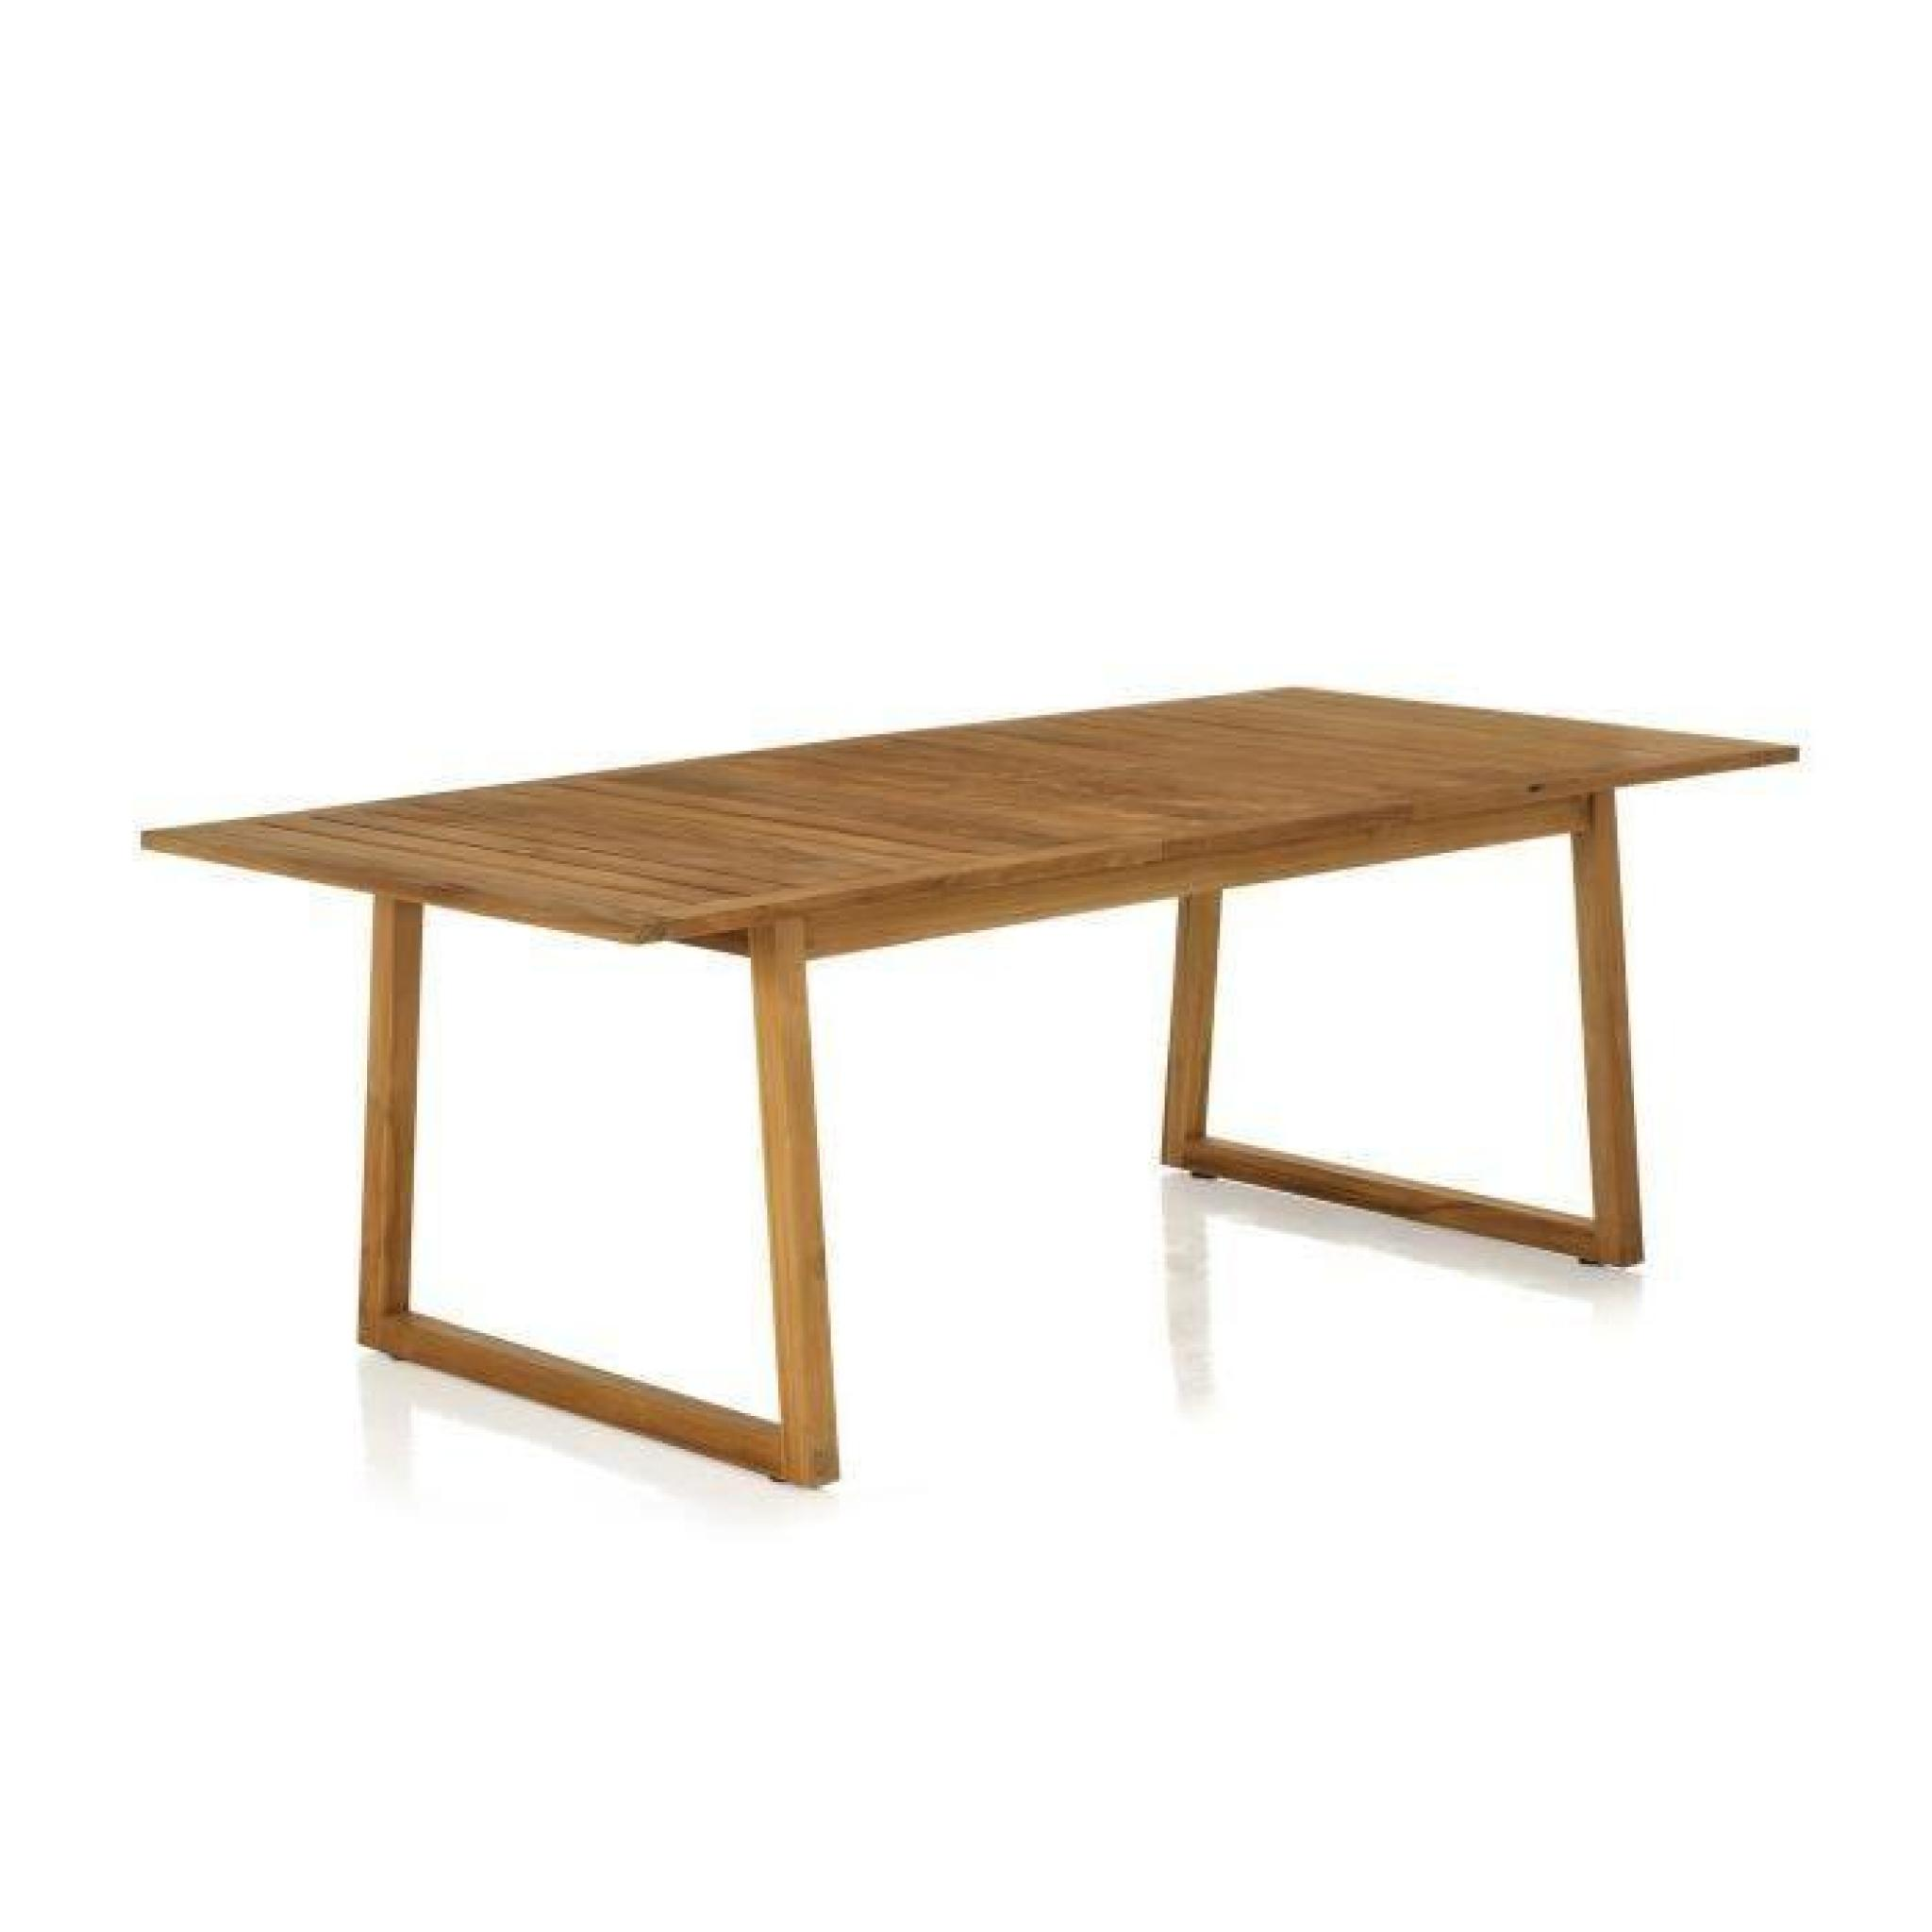 Mia table de jardin rectangulaire en teck allonge papillon naturel achat vente table de - Table en teck jardin ...